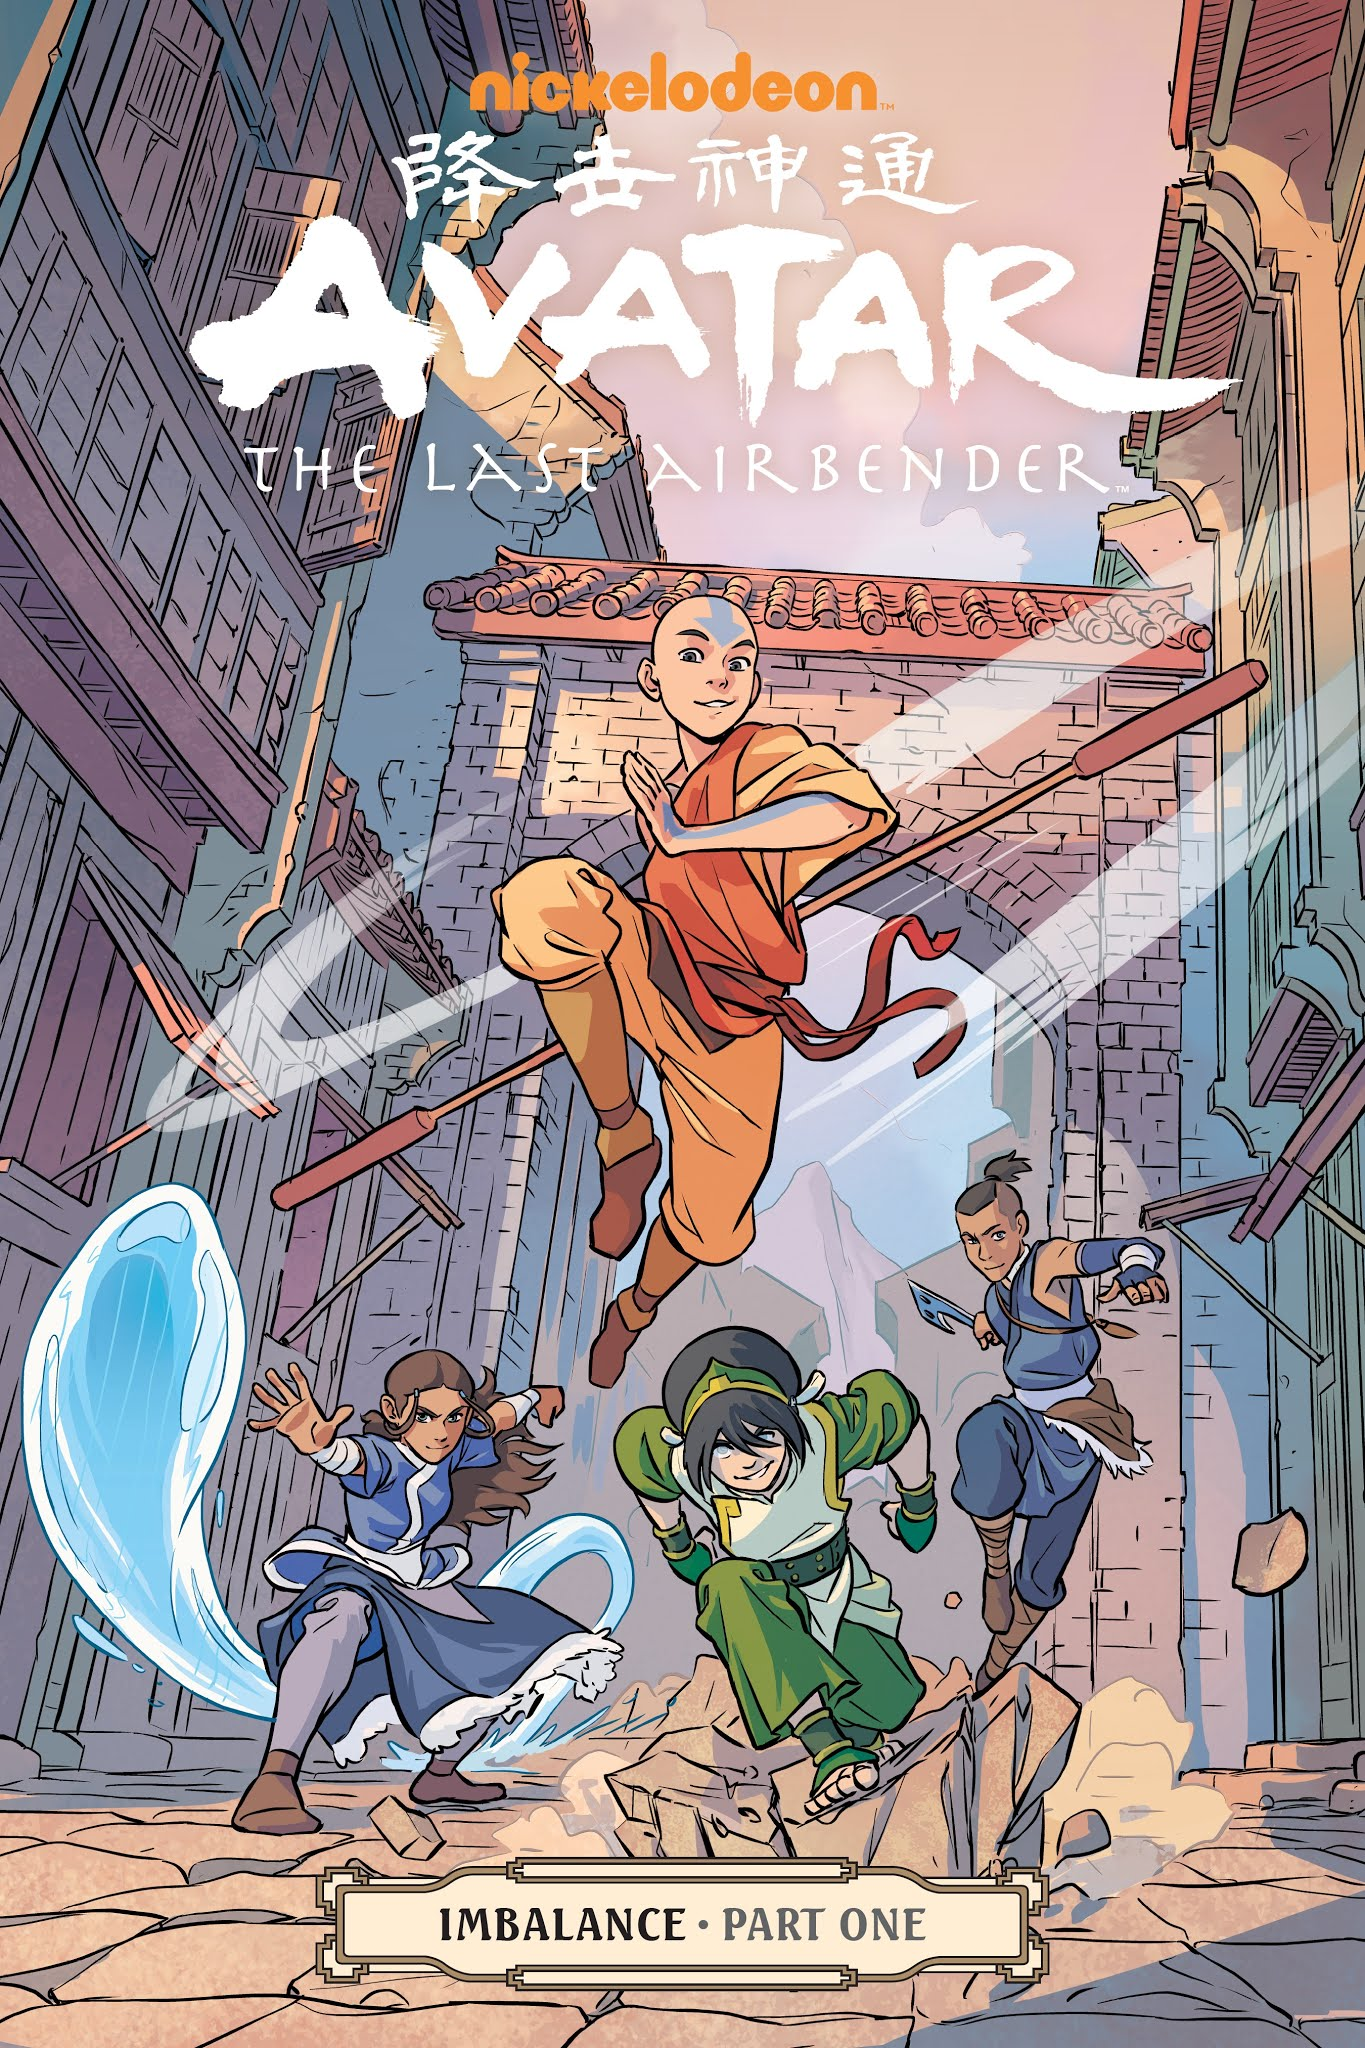 Nickelodeon Avatar: The Last Airbender - Imbalance TPB 1 Page 1